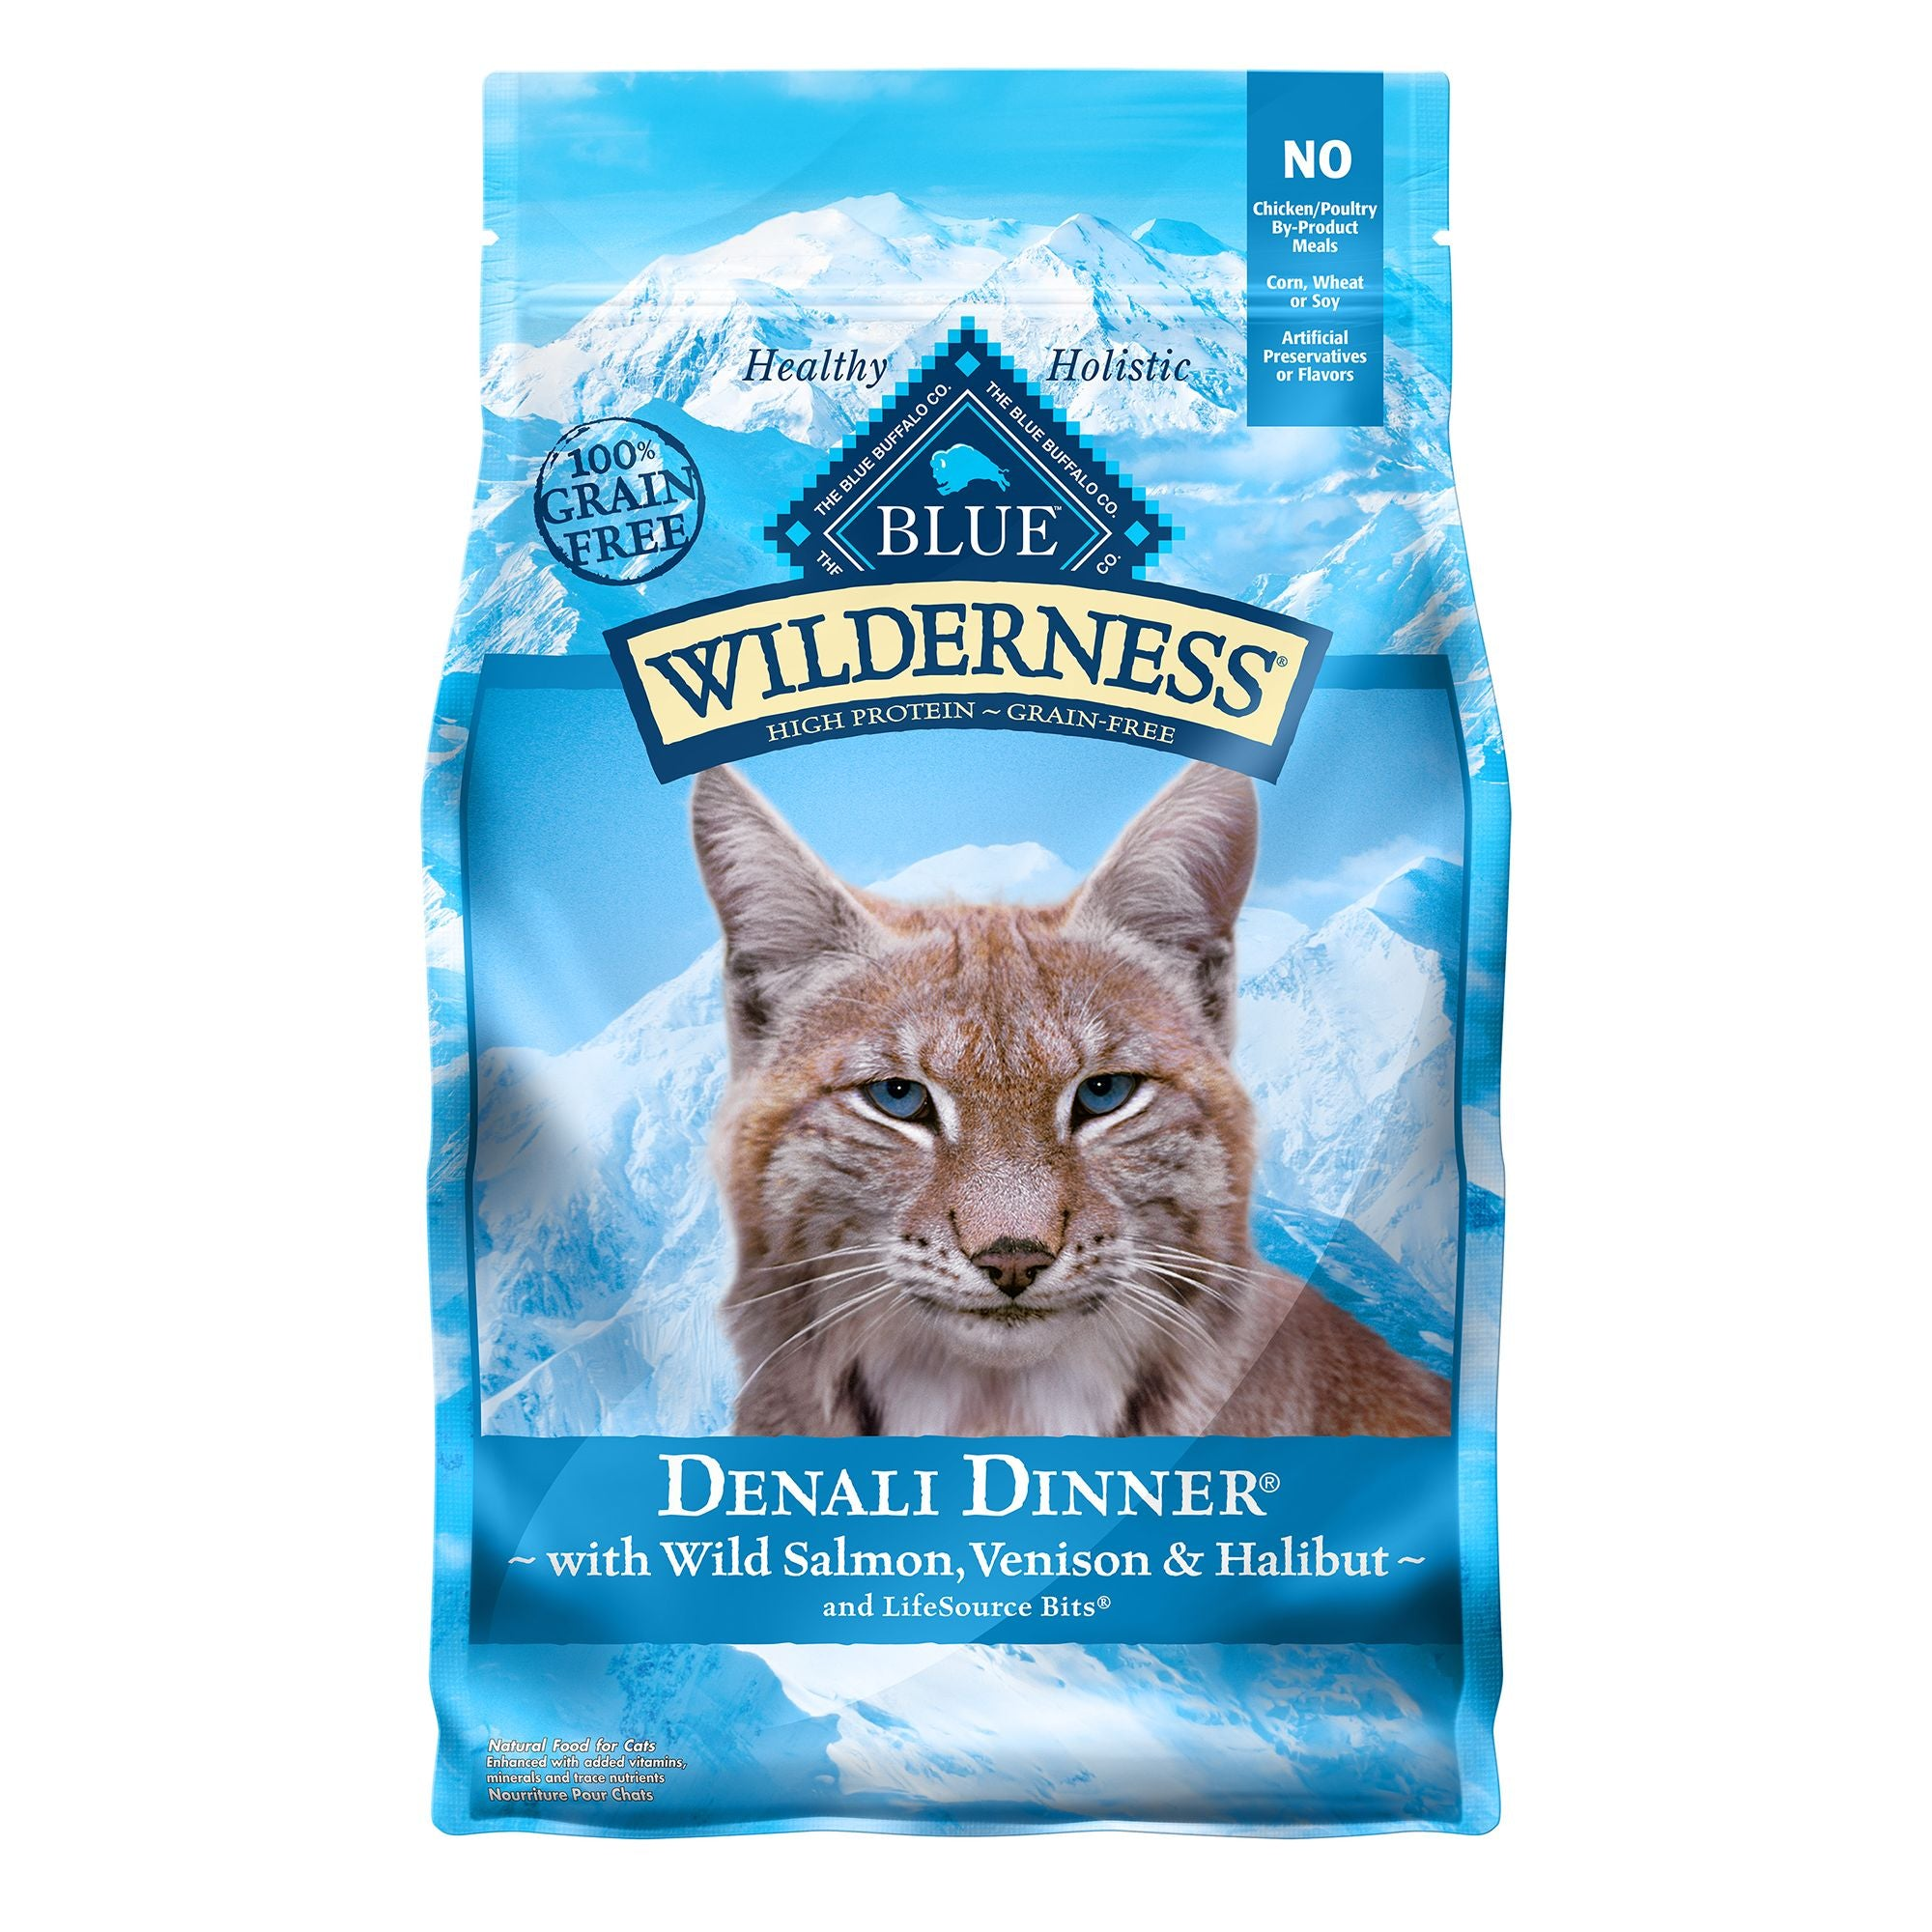 Blue Wilderness Grain-Free Denali Dinner